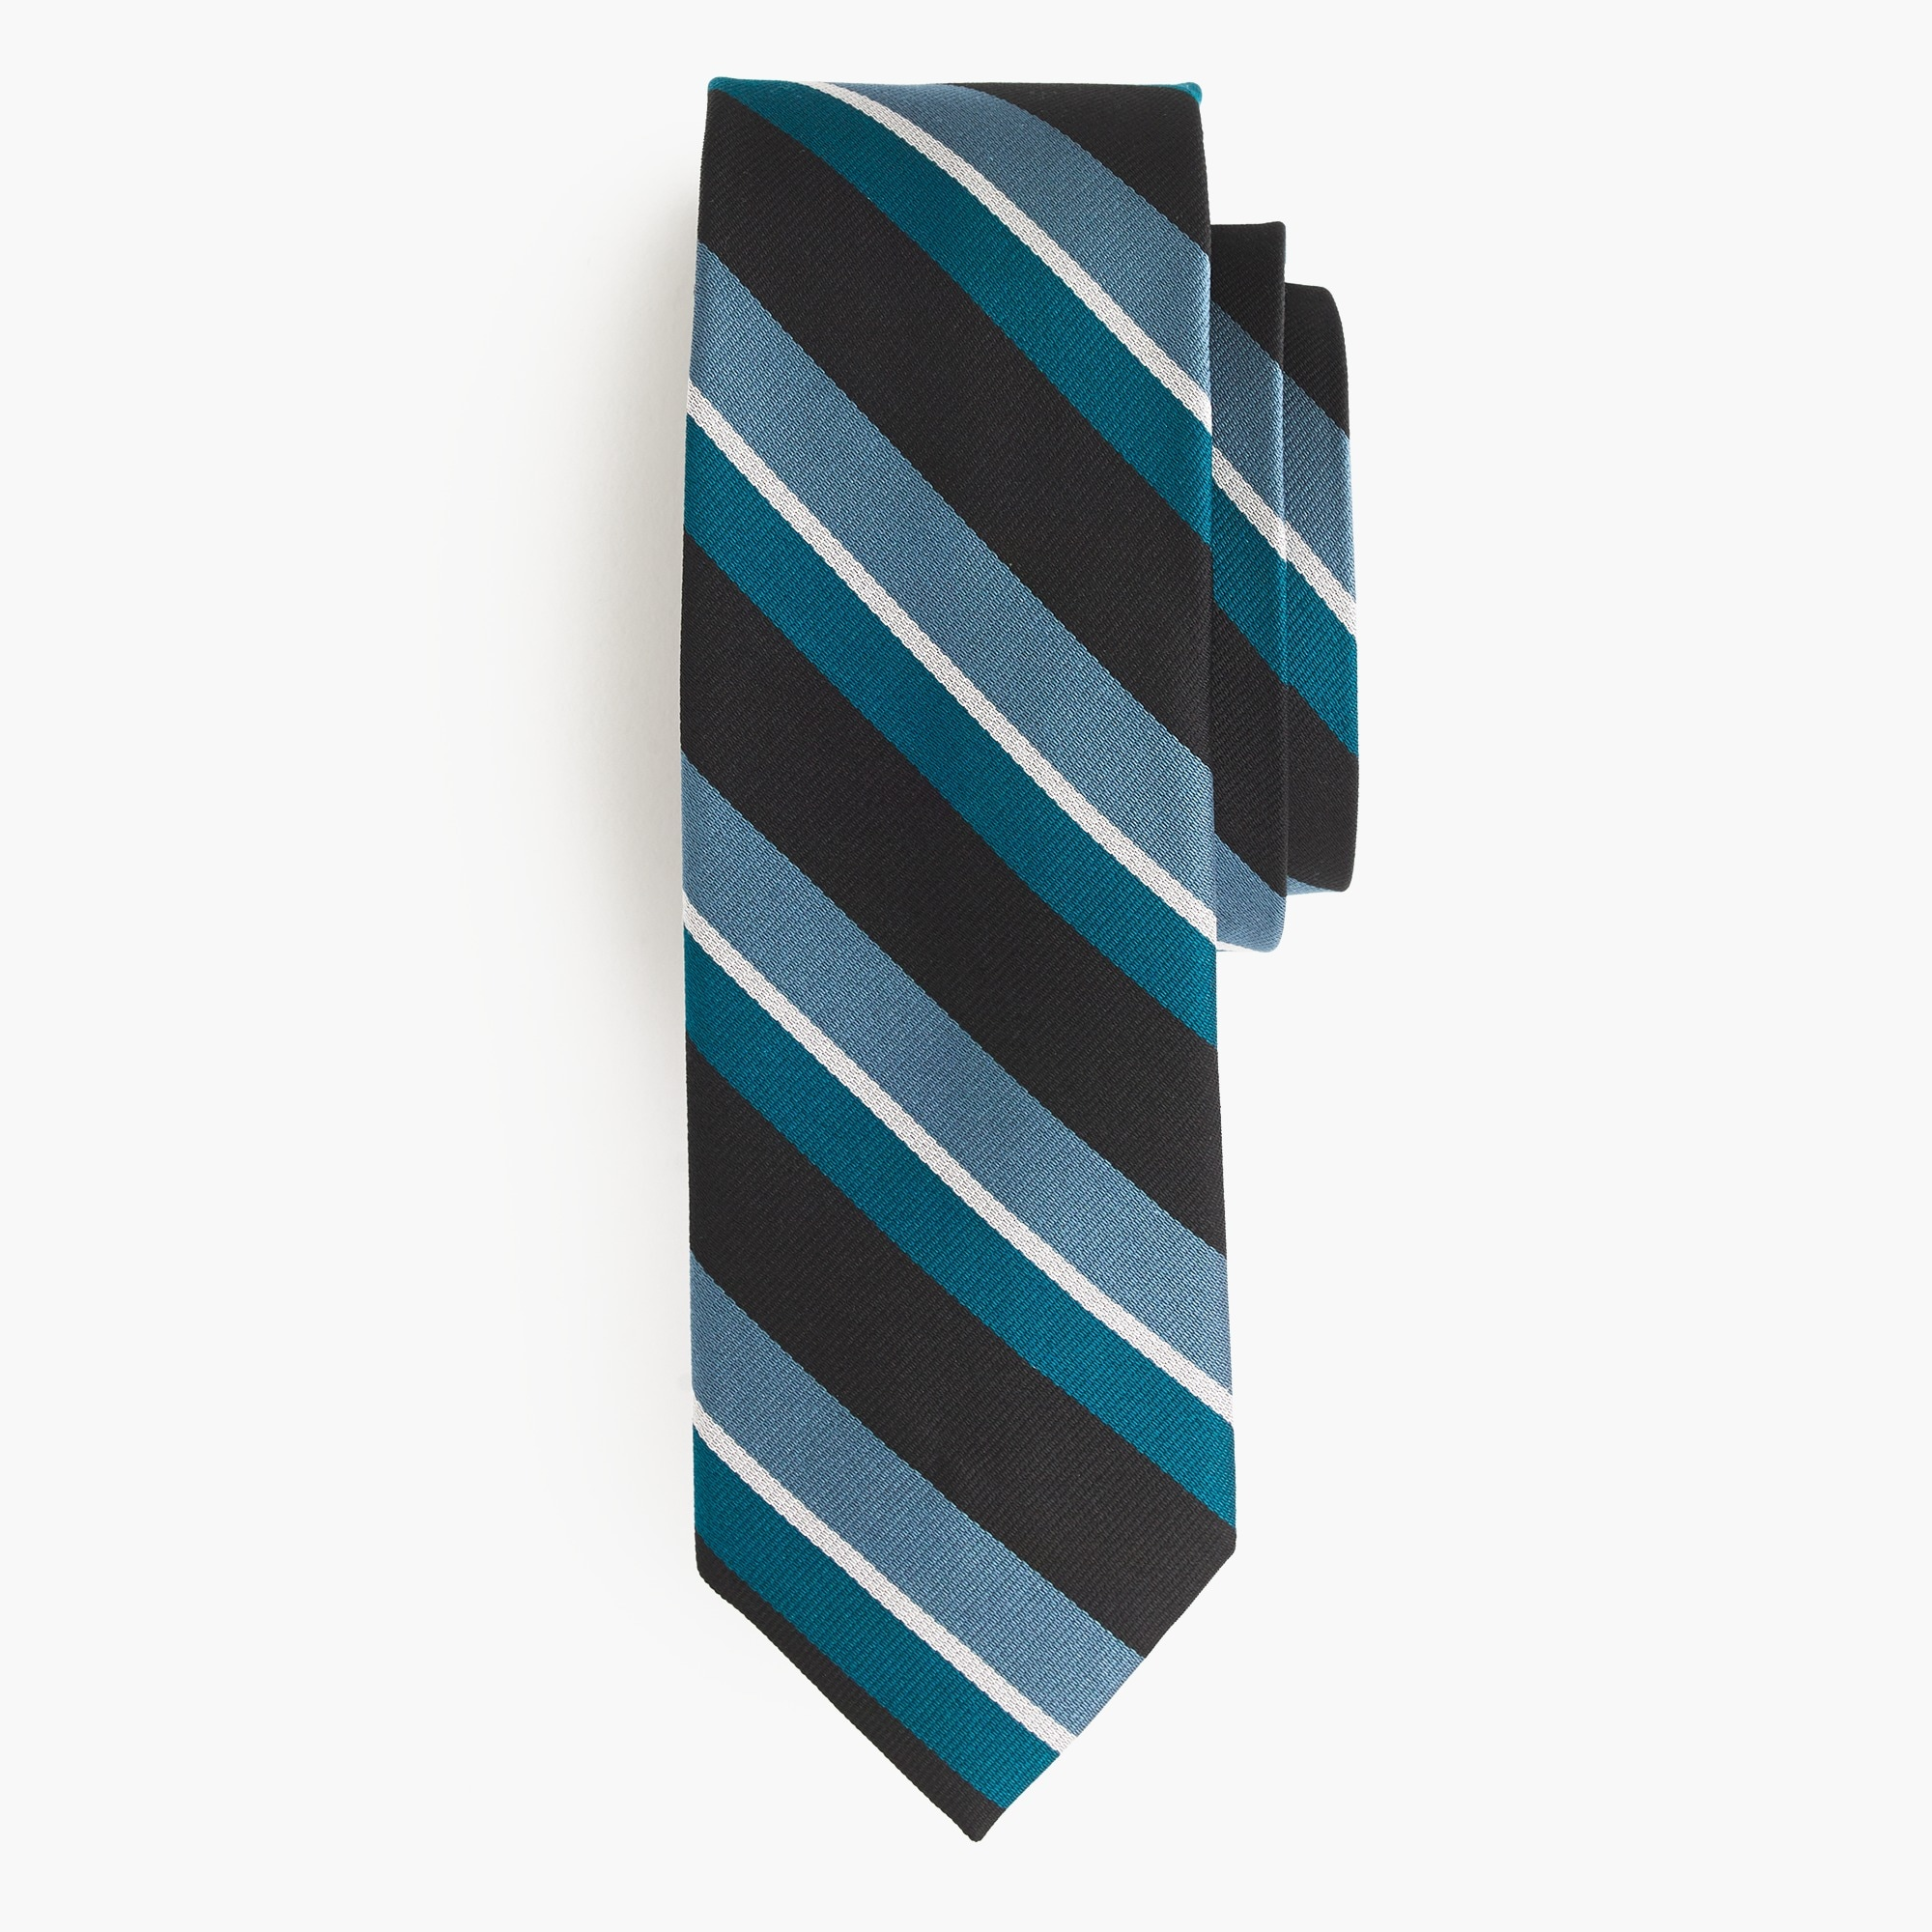 Silk repp tie in blue and black stripe